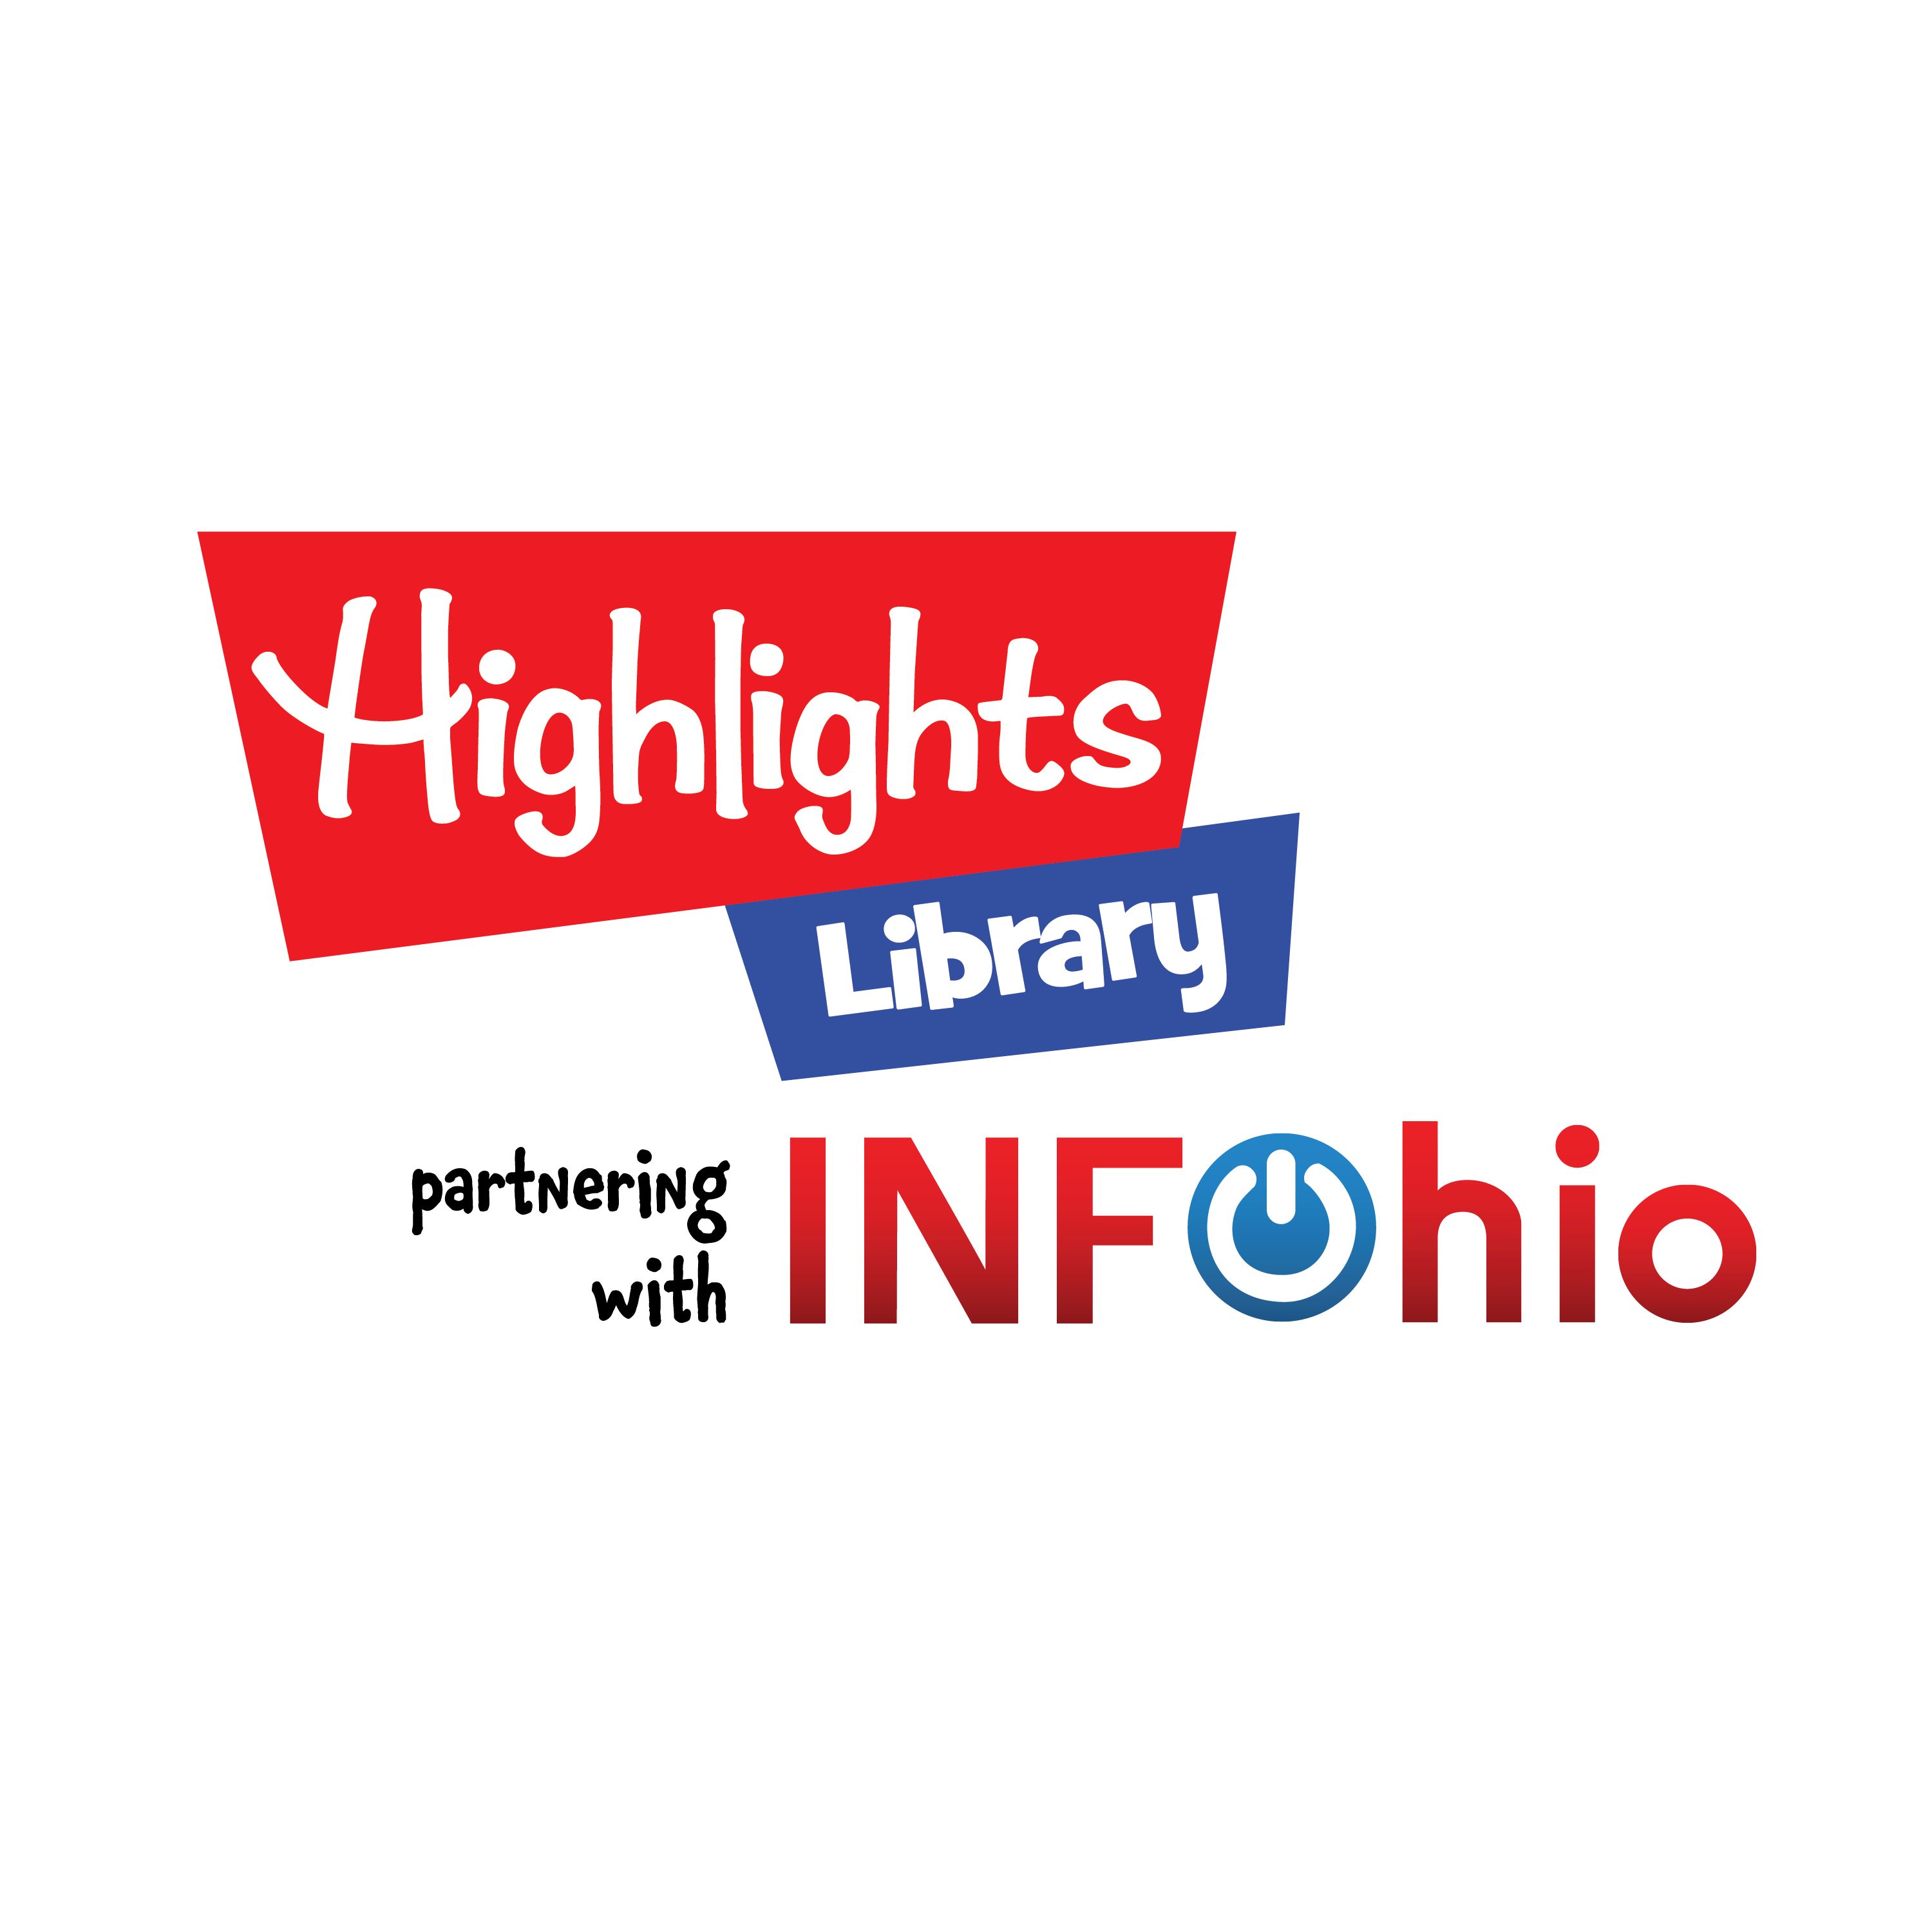 A New INFOhio Partnership: Highlights Library is Here!